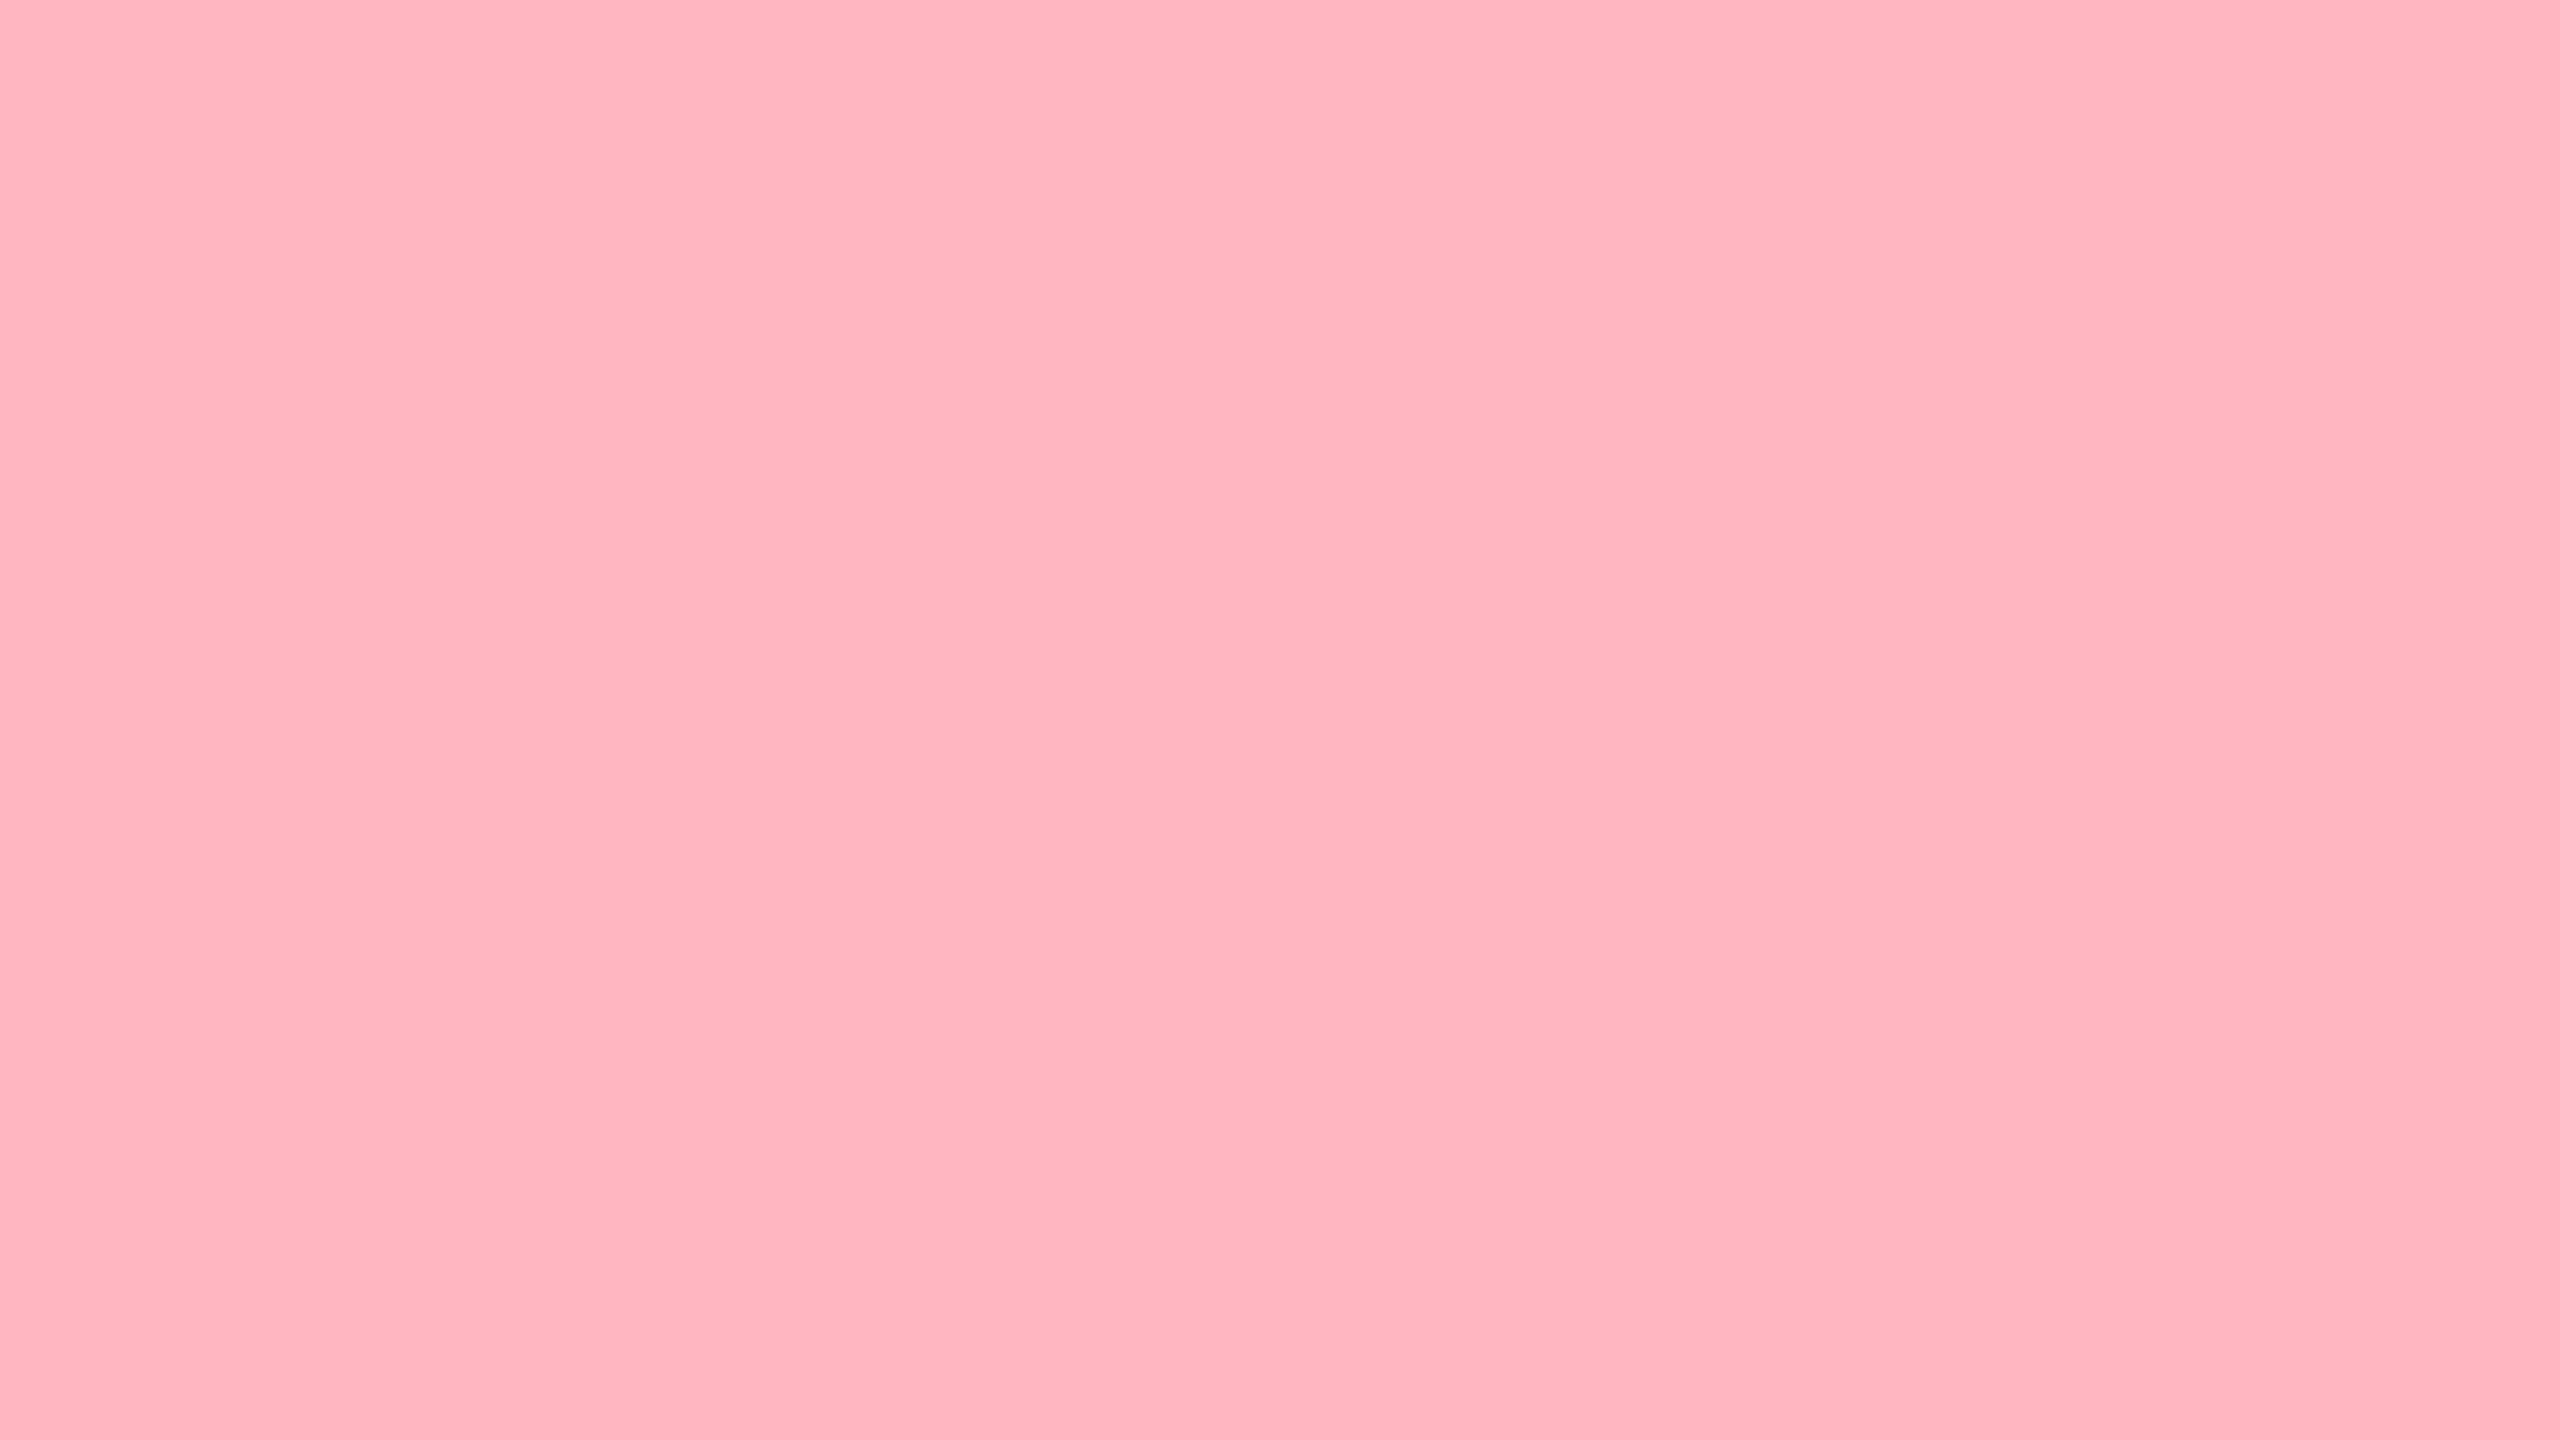 Pink Wallpapers Tumblr 80 Wallpapers – HD Wallpapers